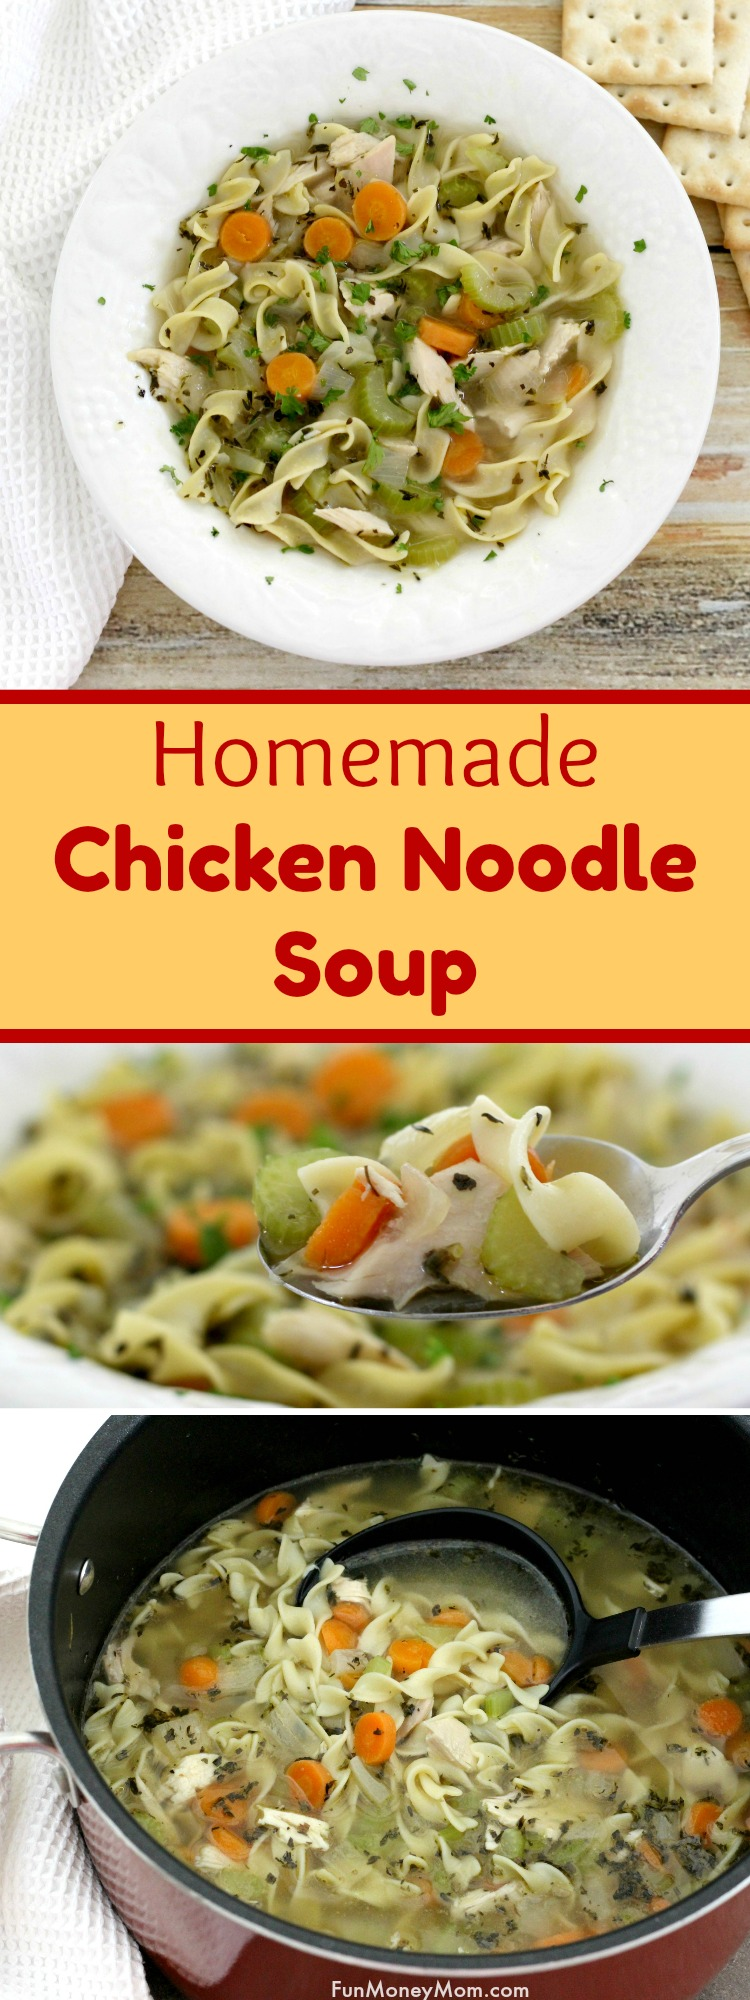 Homemade Chicken Noodle Soup - This chicken noodle soup recipe is the perfect easy dinner. It's a 30 minute recipe that busy moms can cook knowing their feeding their family a healthy meal. #BigelowTea #TeaProudly #ad